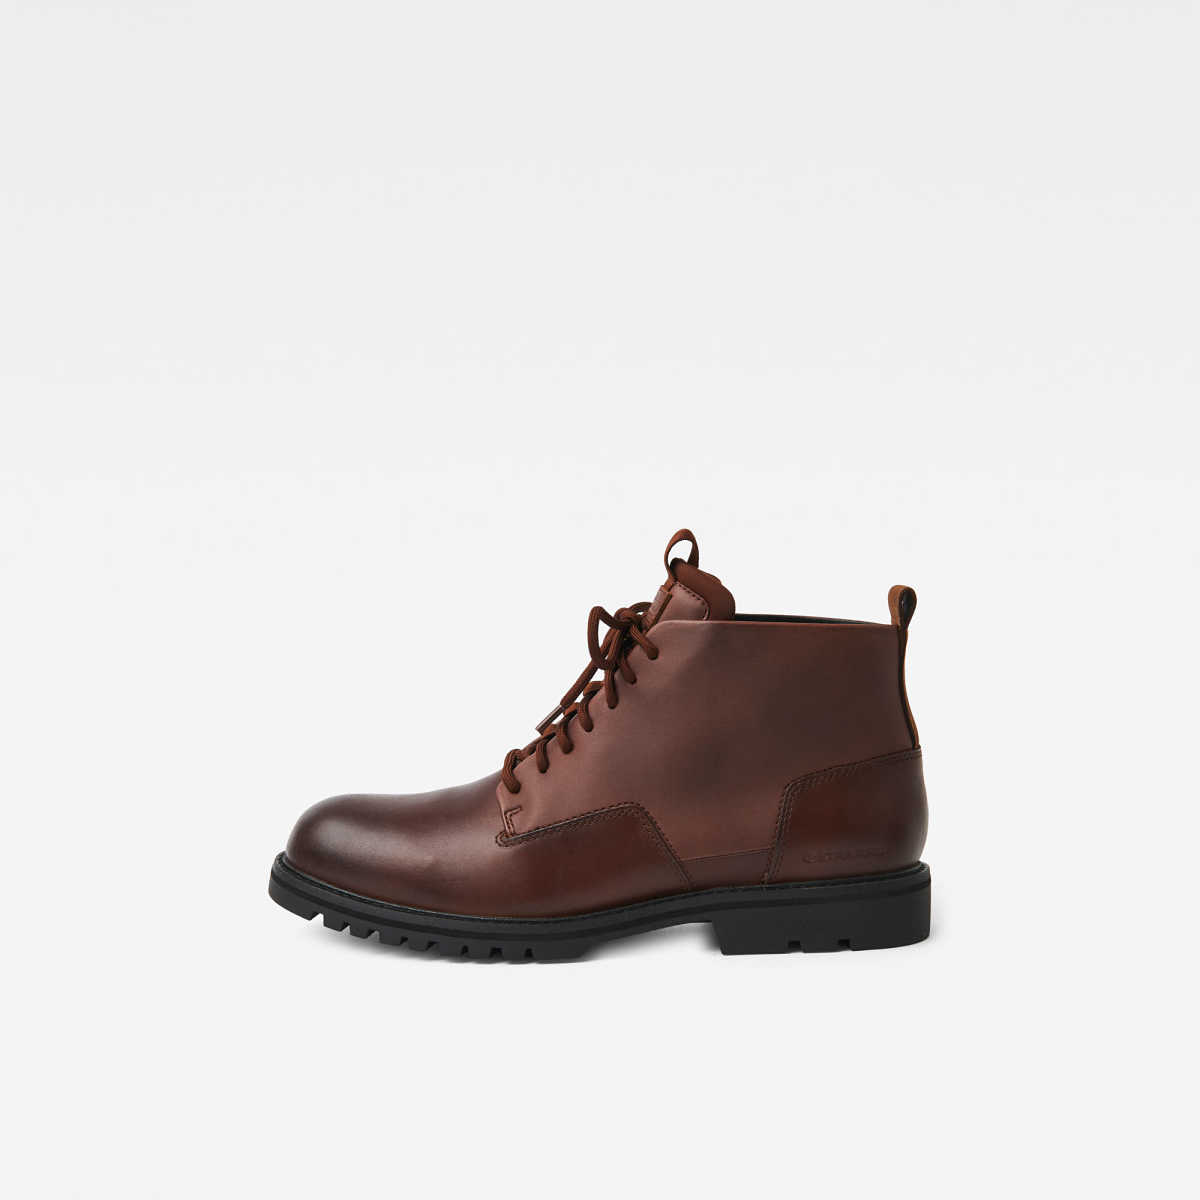 G-Star Male Core Derby Boot Ii Shoes Brown USA - GOOFASH - Mens BOOTS